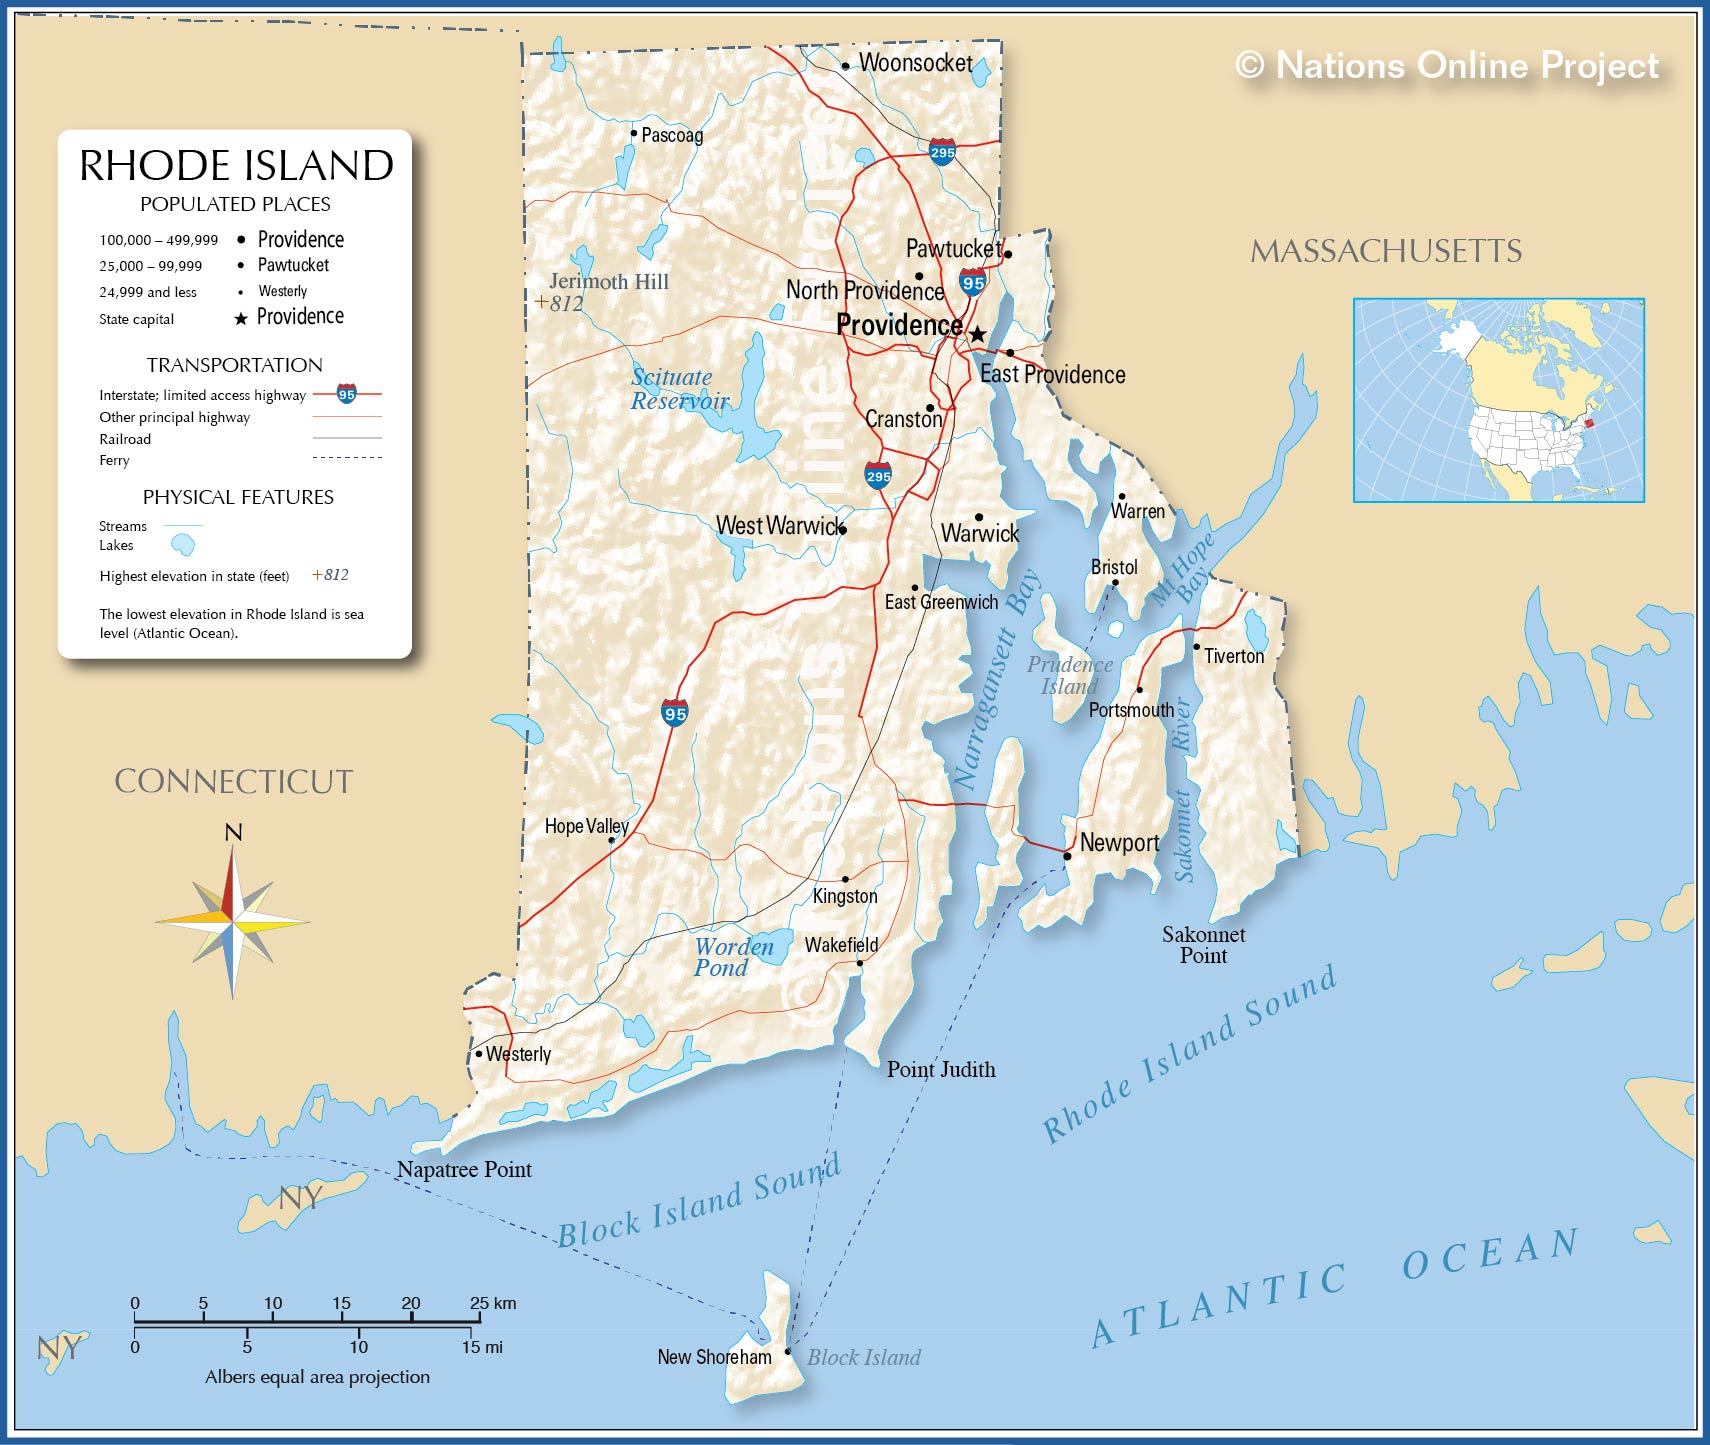 Reference Map Of Rhode Island USA Nations Online Project - Road island usa map